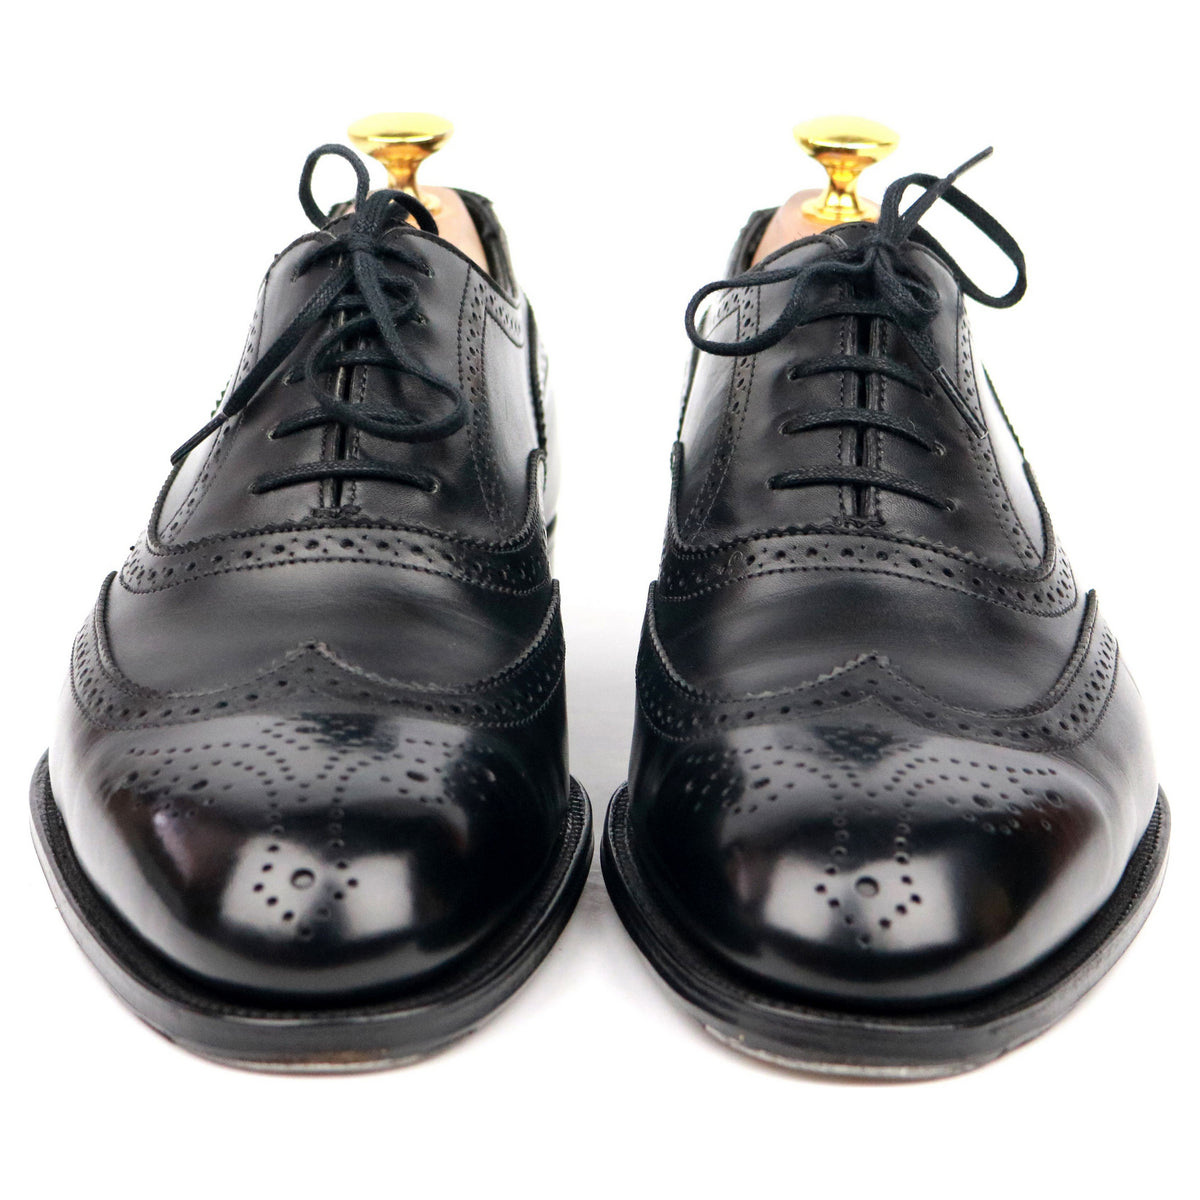 Alfred Sargent 'Hunt' Black Leather Brogues UK 7 F